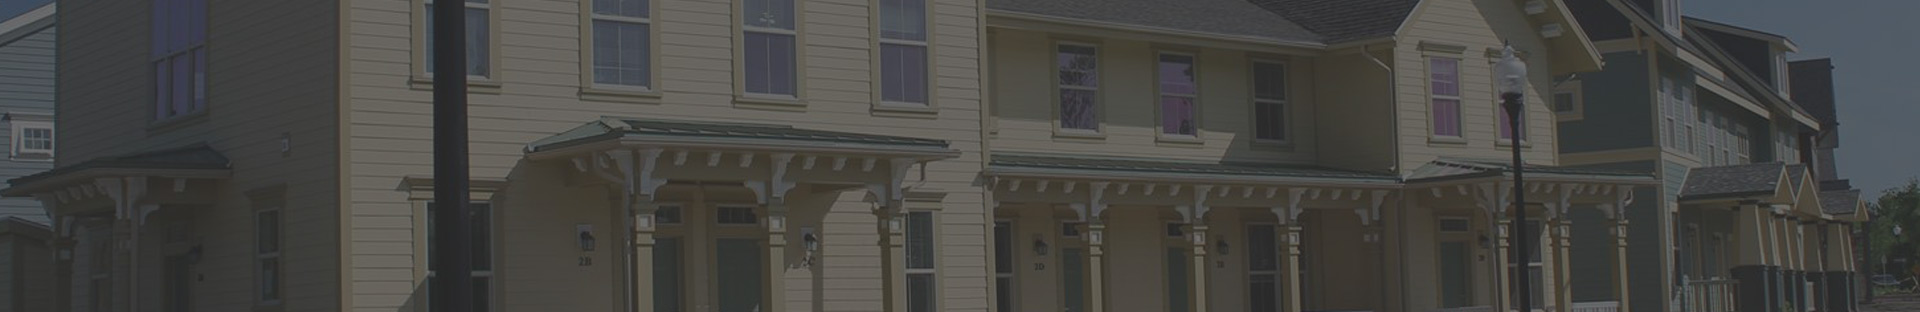 PROJECT-CATEGORY-BANNER-MULTIFAMILY.jpg